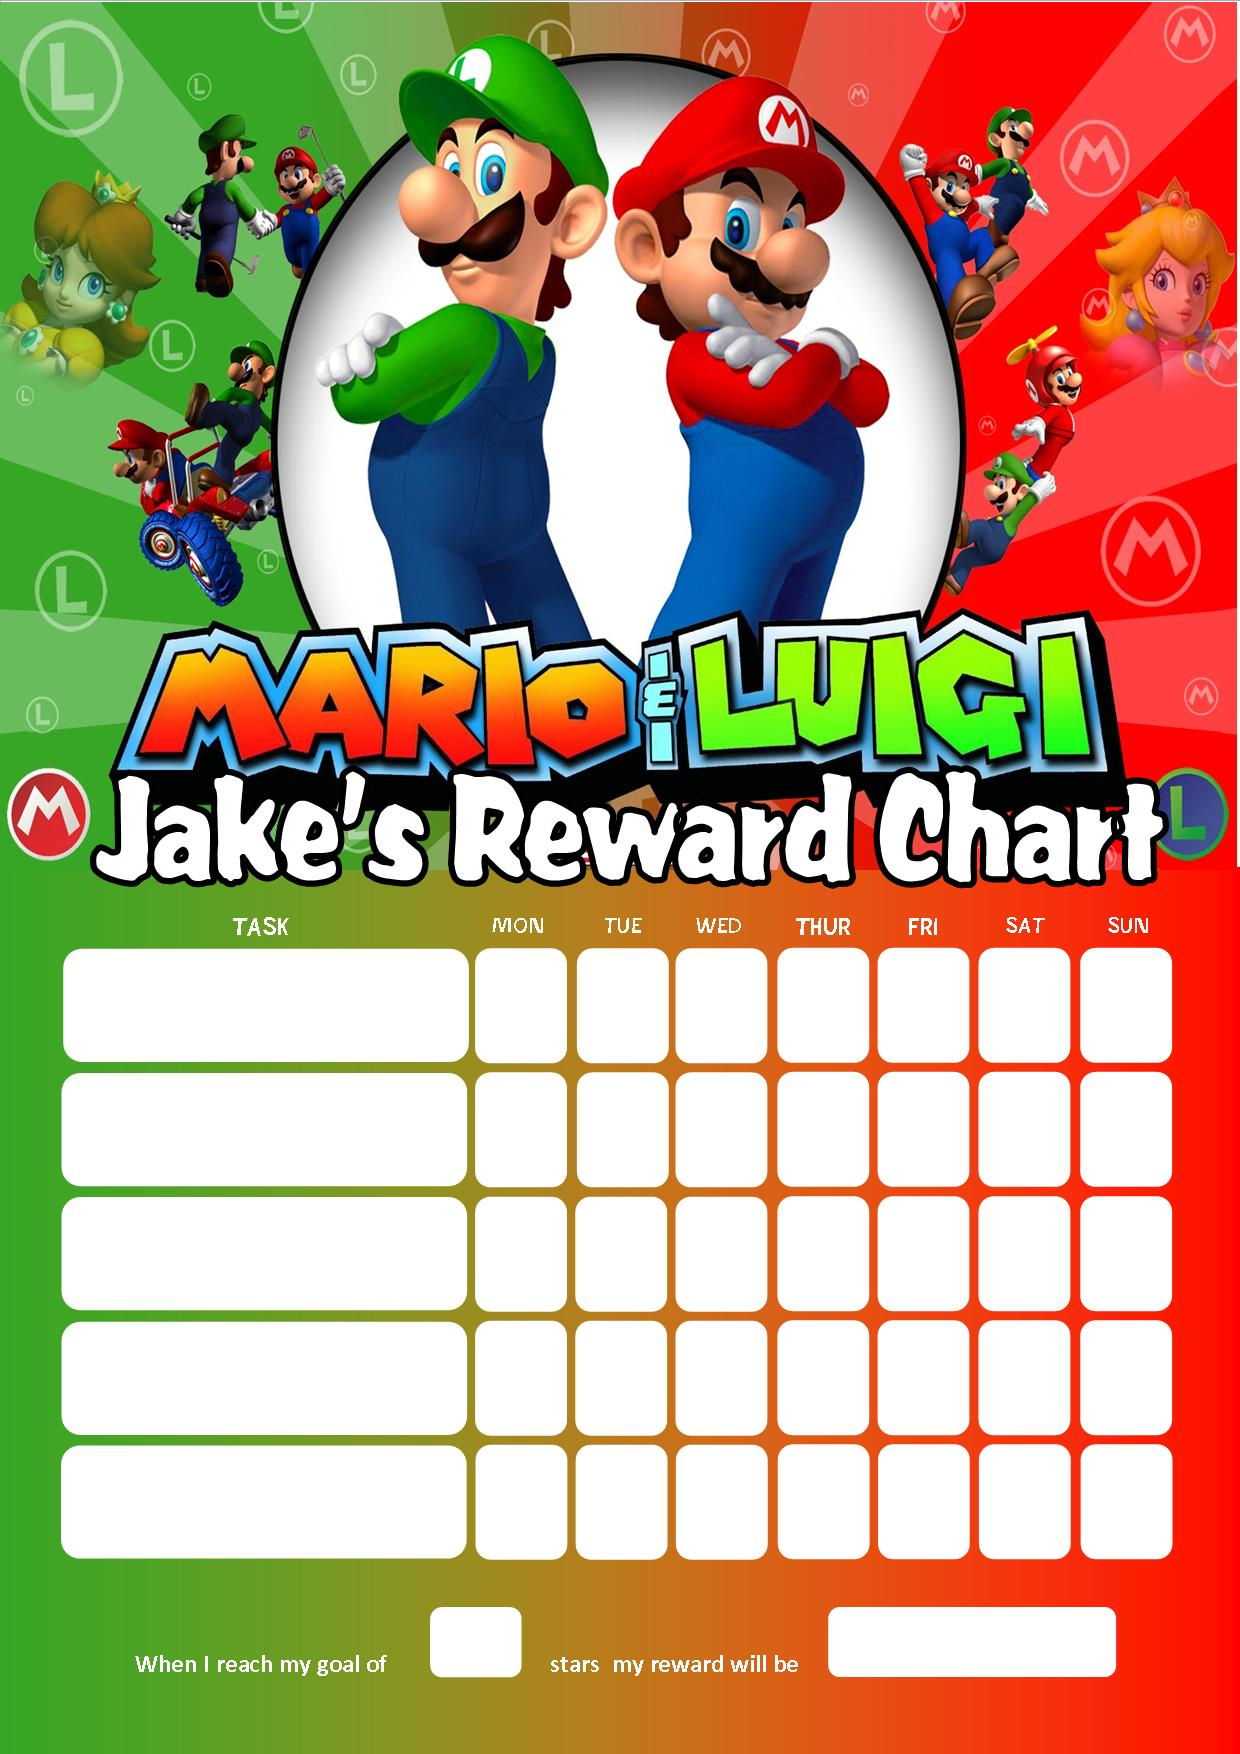 Personalised super mario and luigi reward chart adding photo personalised super mario and luigi reward chart adding photo option available monicamarmolfo Gallery